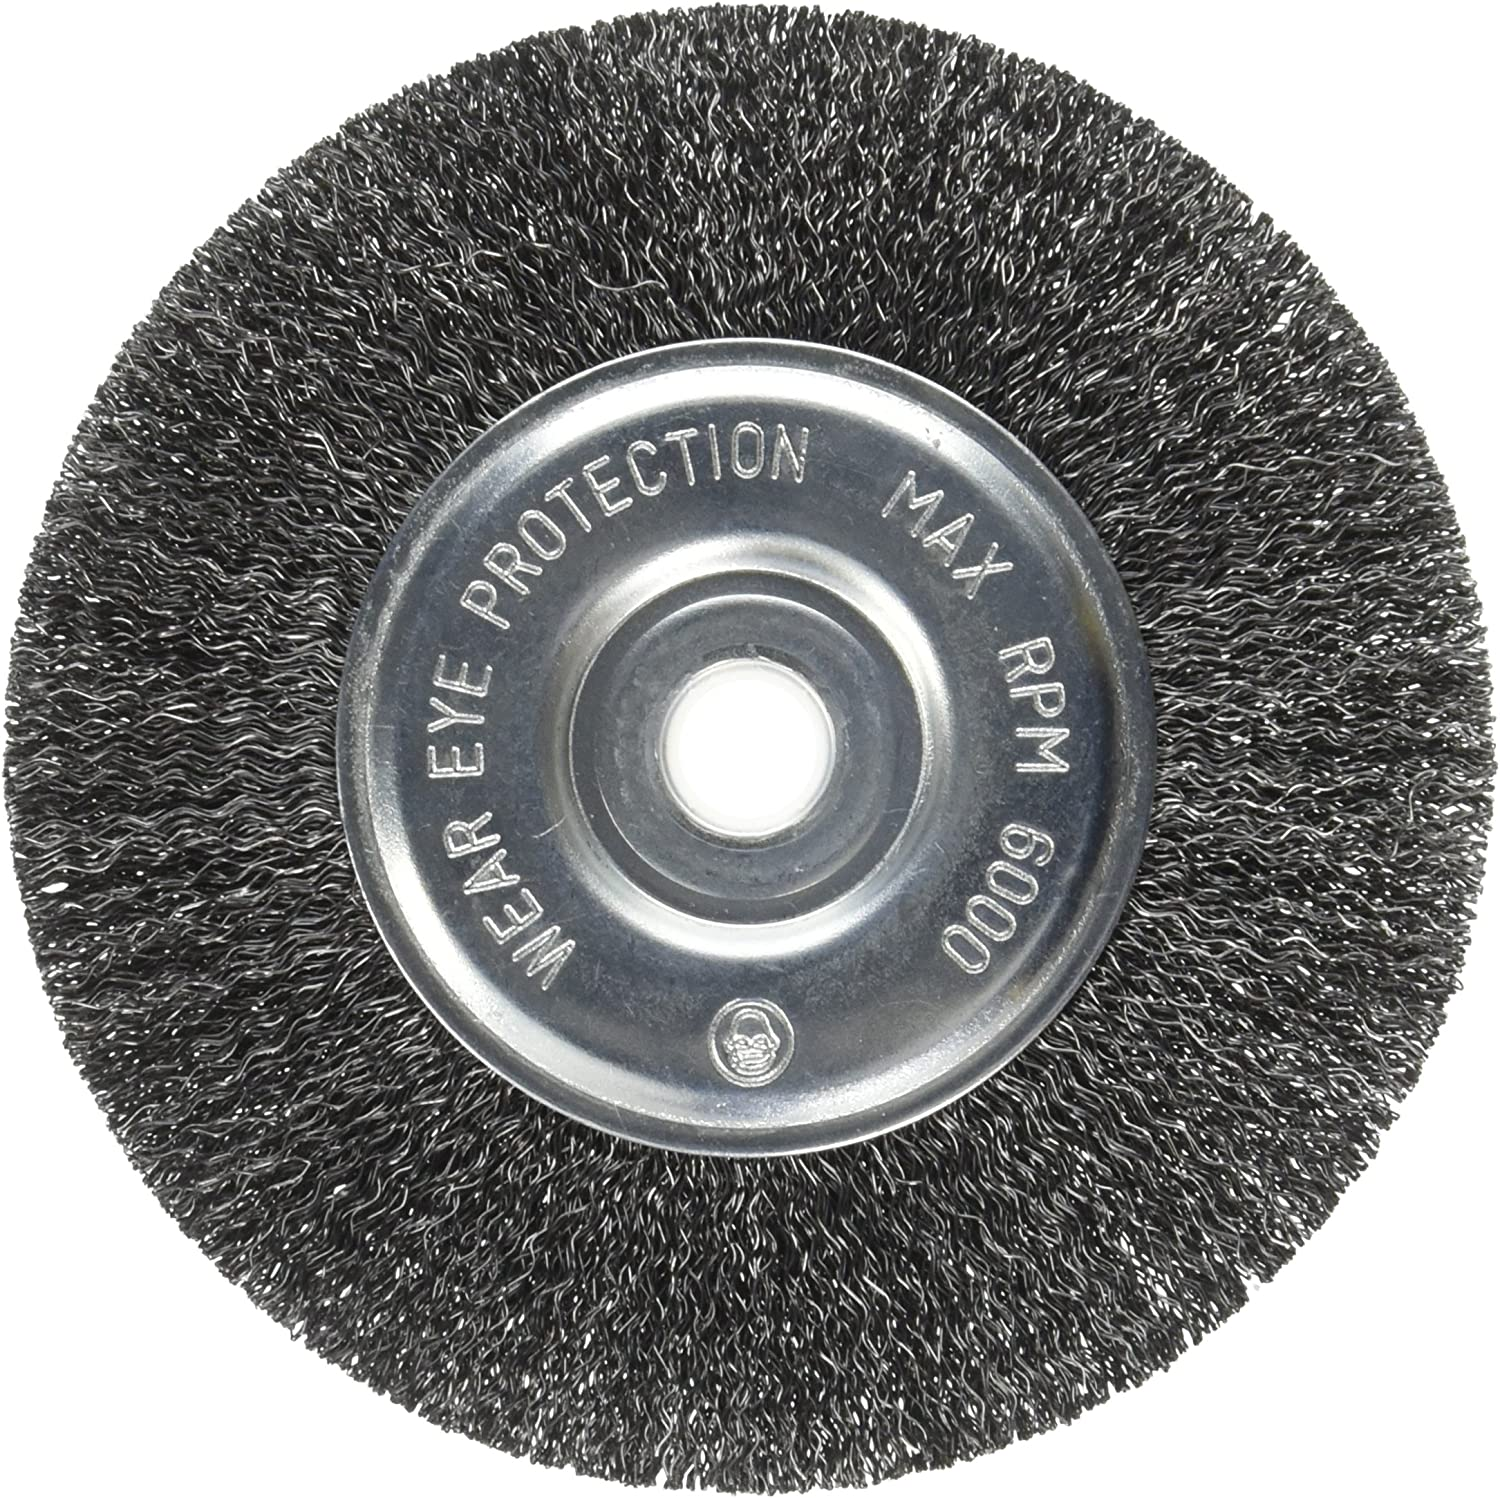 Victor Firepower 1423-3159 Knot Cup Brush 1423-3159 3 x 3//8-24 for Angle Grinder